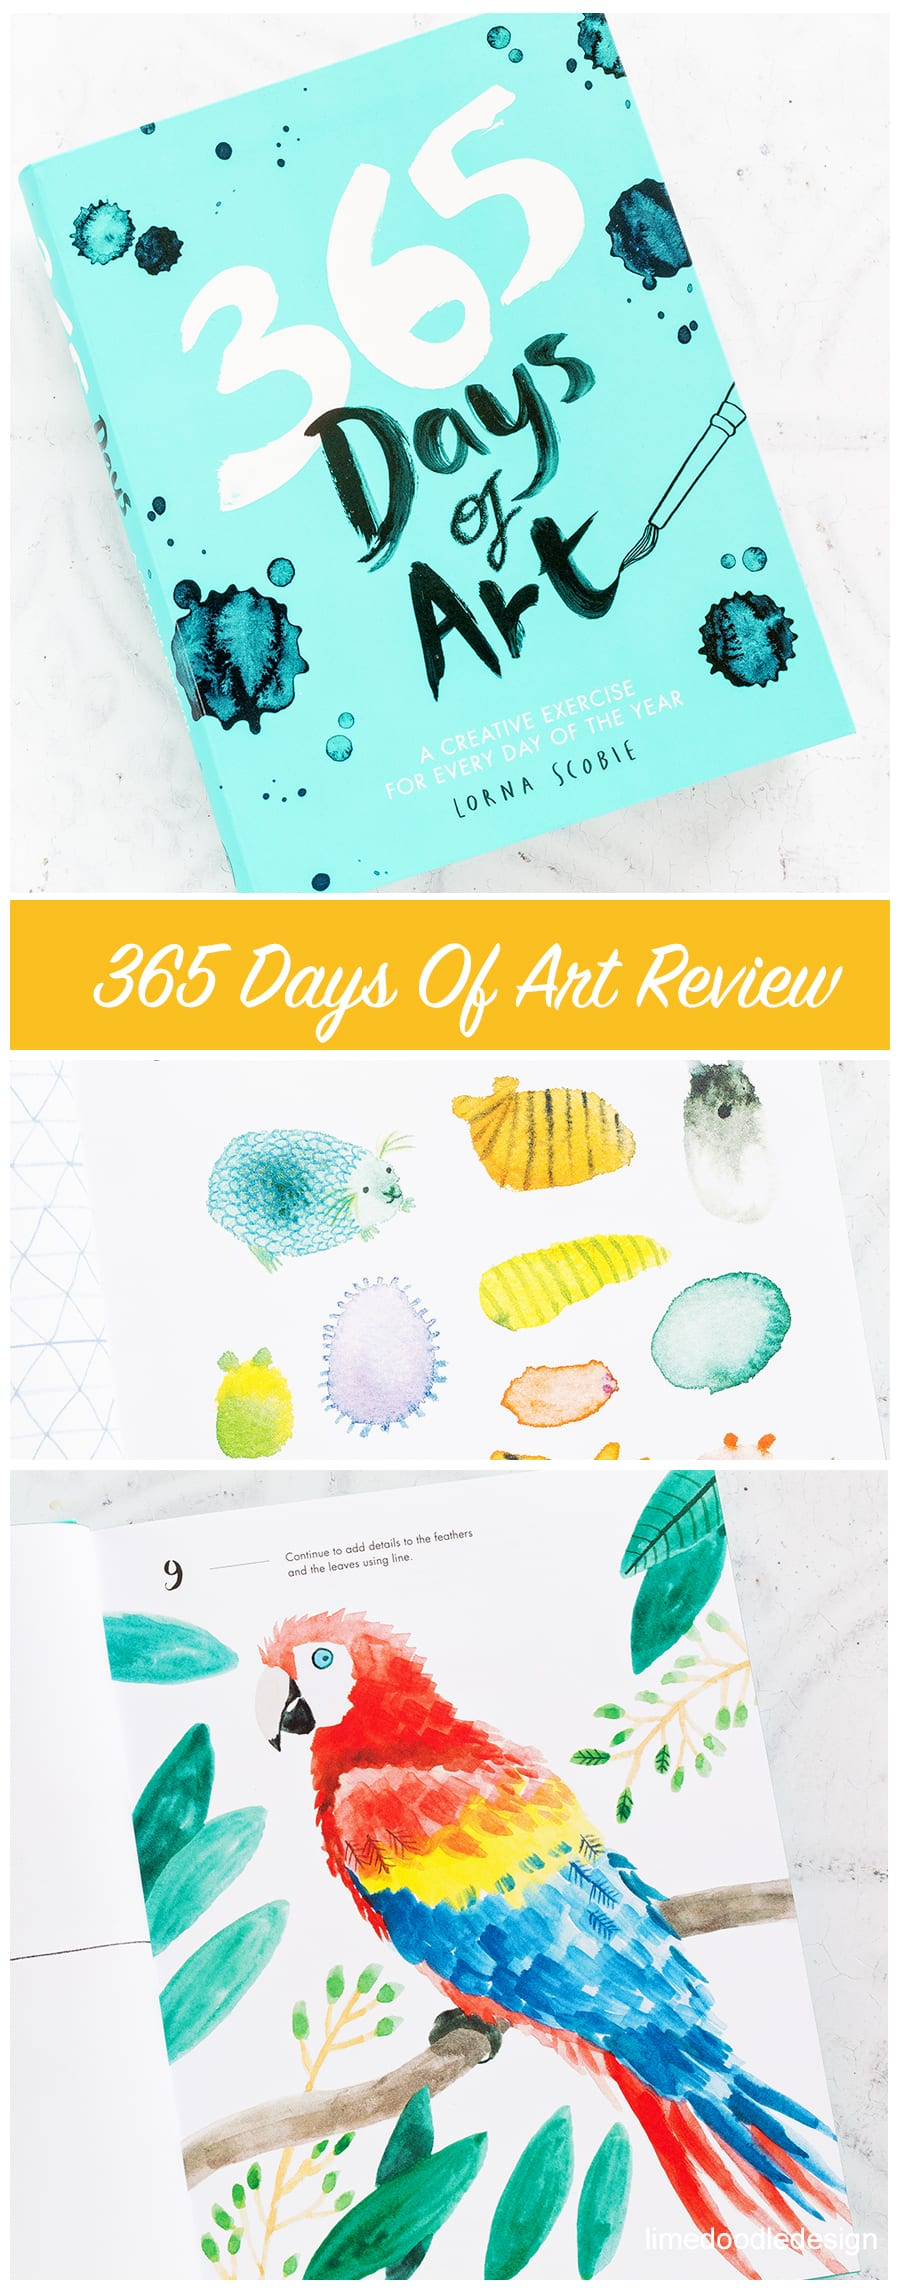 A book review of 365 Days Of Art by Lorna Scobie. Find out more here http://limedoodledesign.com/2018/02/book-review-365-days-of-art/